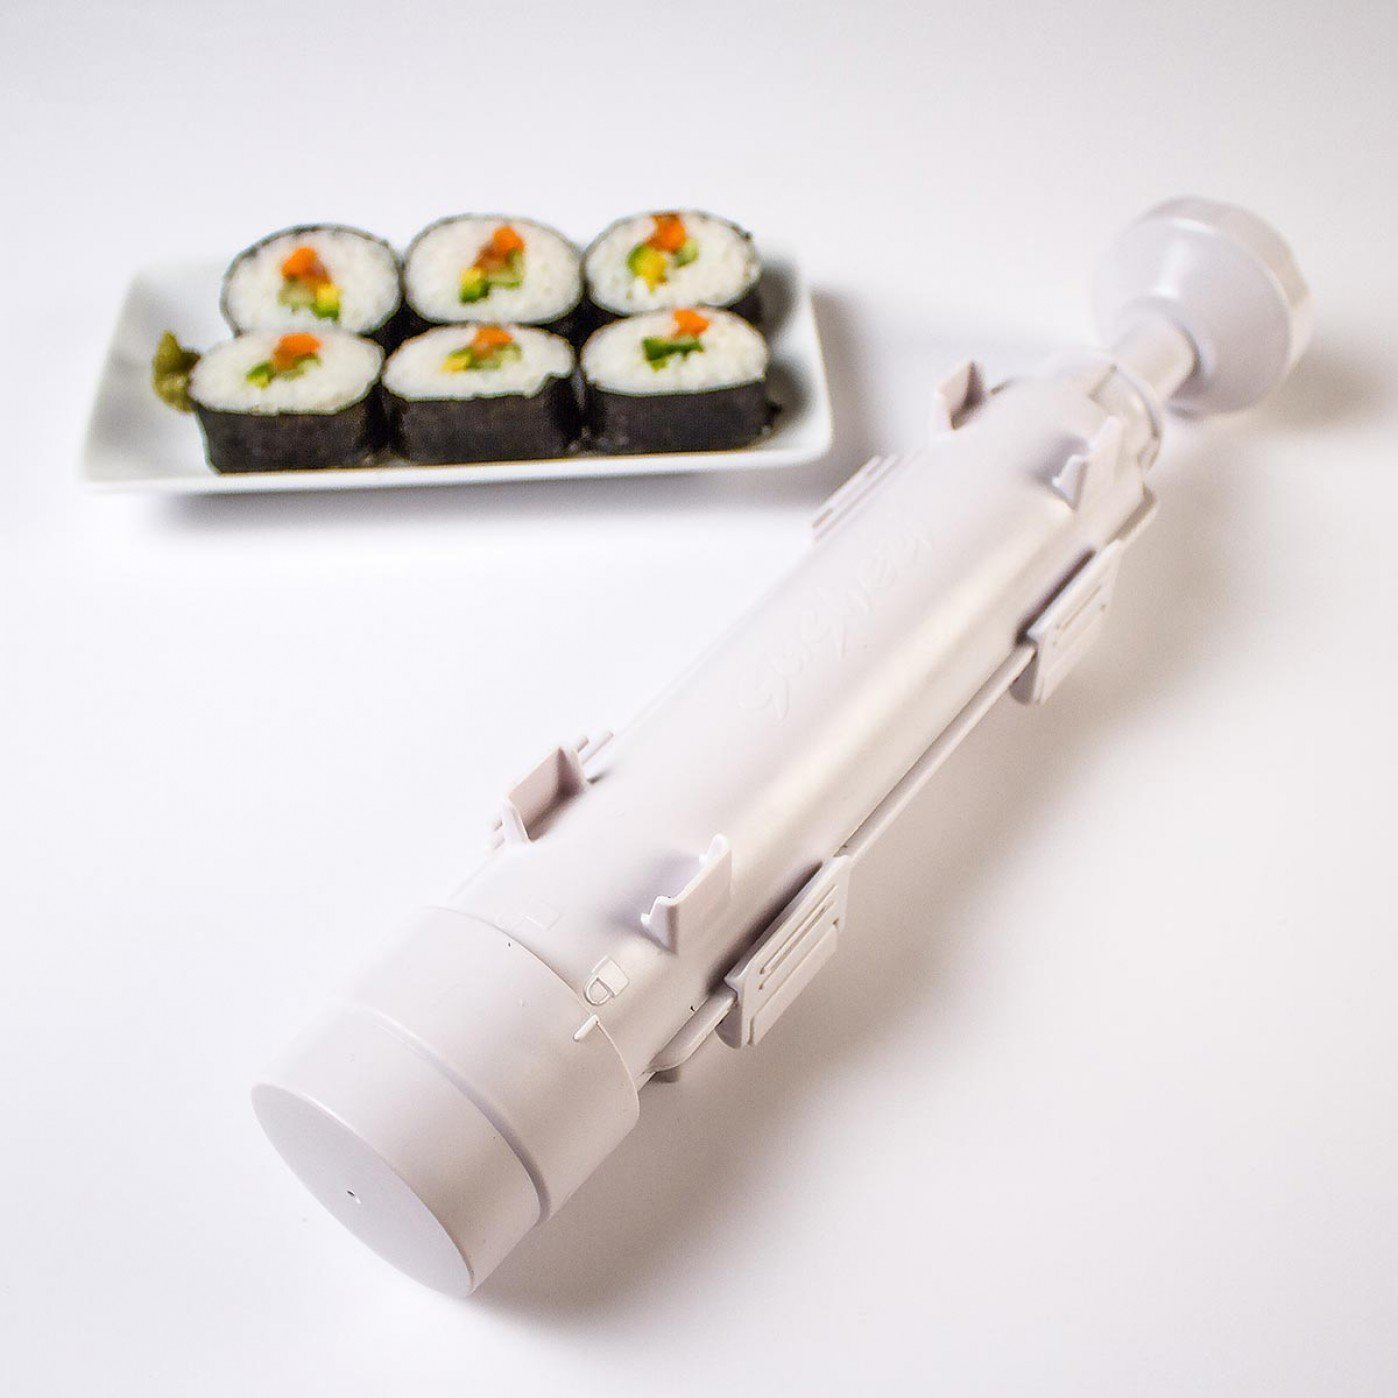 All In 1 Bazooka Roller Kit Sushi Rolls Maker Mold Making Tool Machine